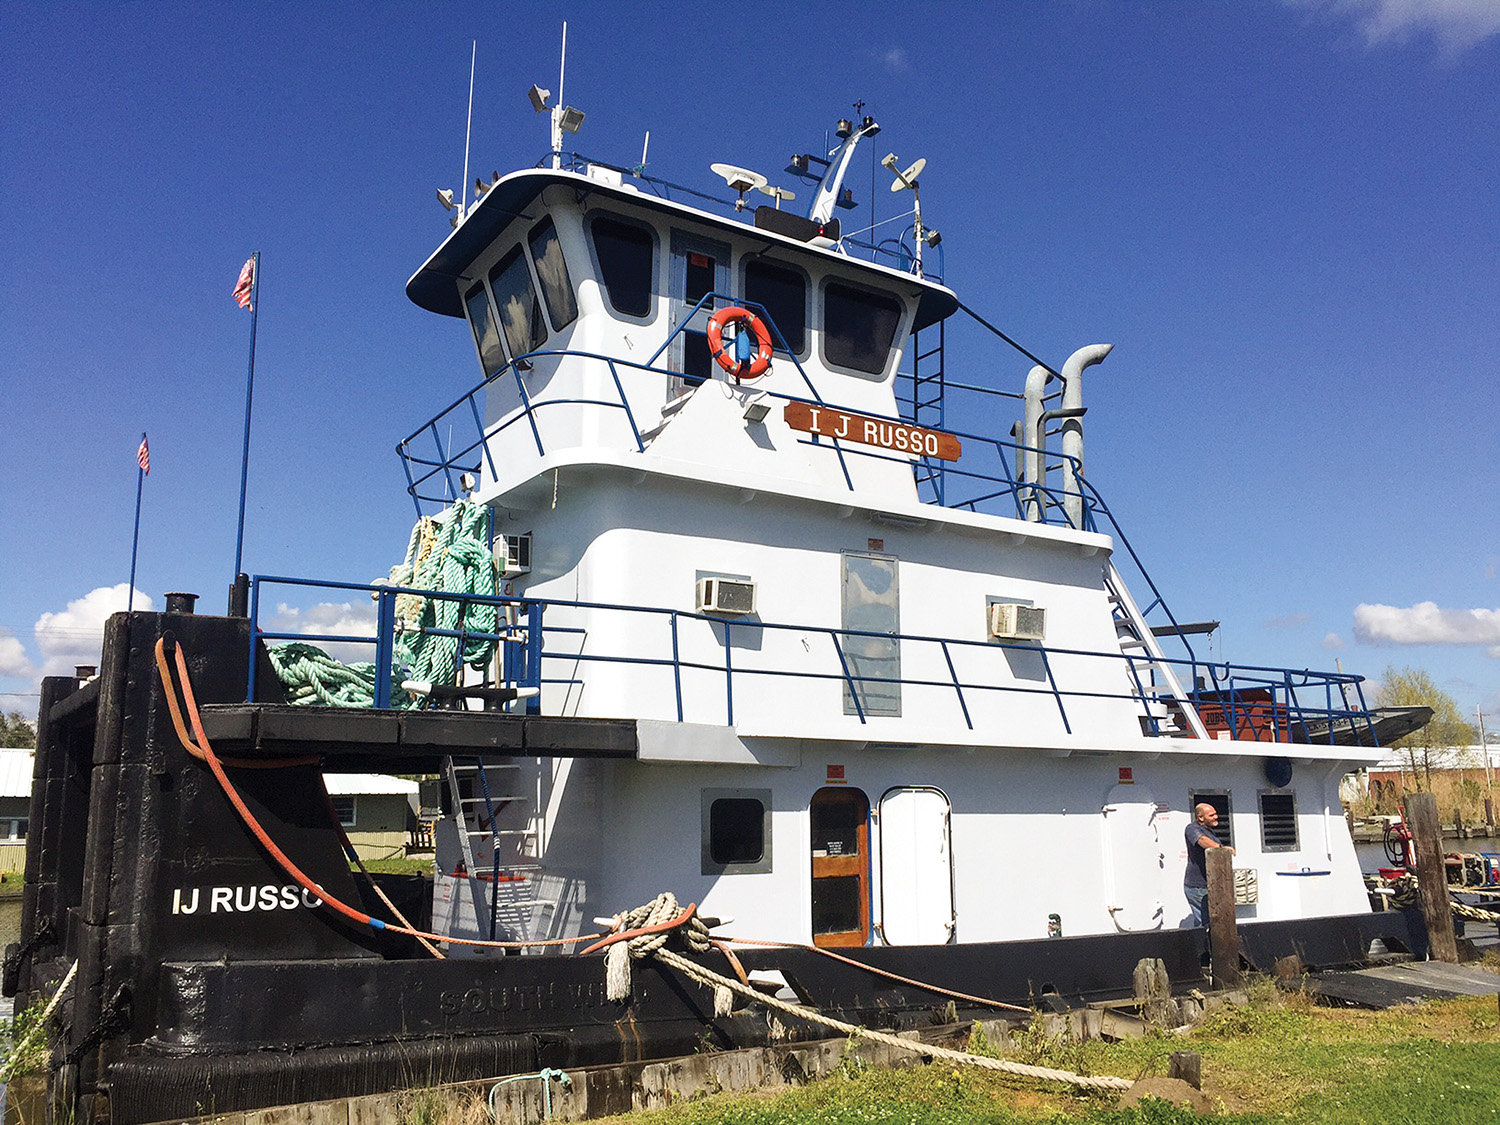 The mv. I.J. Russo has been renamed Clifford H. Galley. It is being rehabbed and will go into service on the Upper Mississippi.